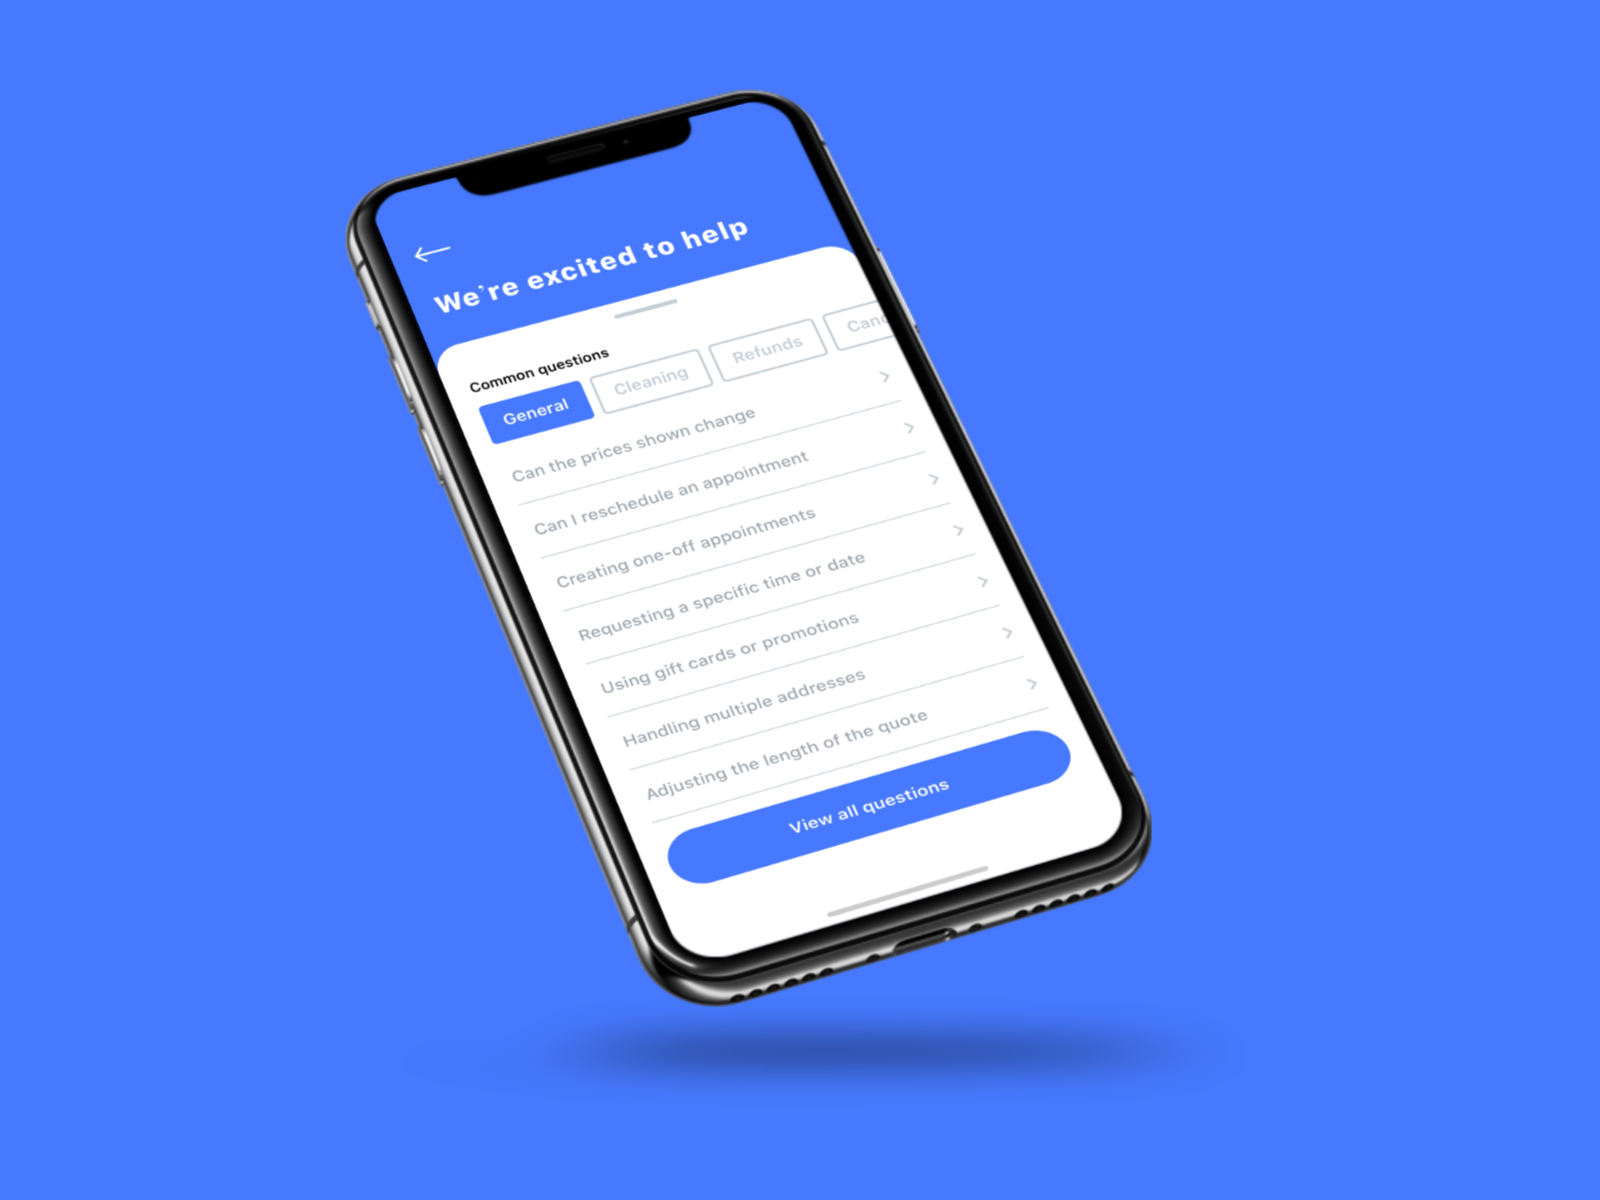 Dribbble shot for ui   ux with iphone x  1  4x